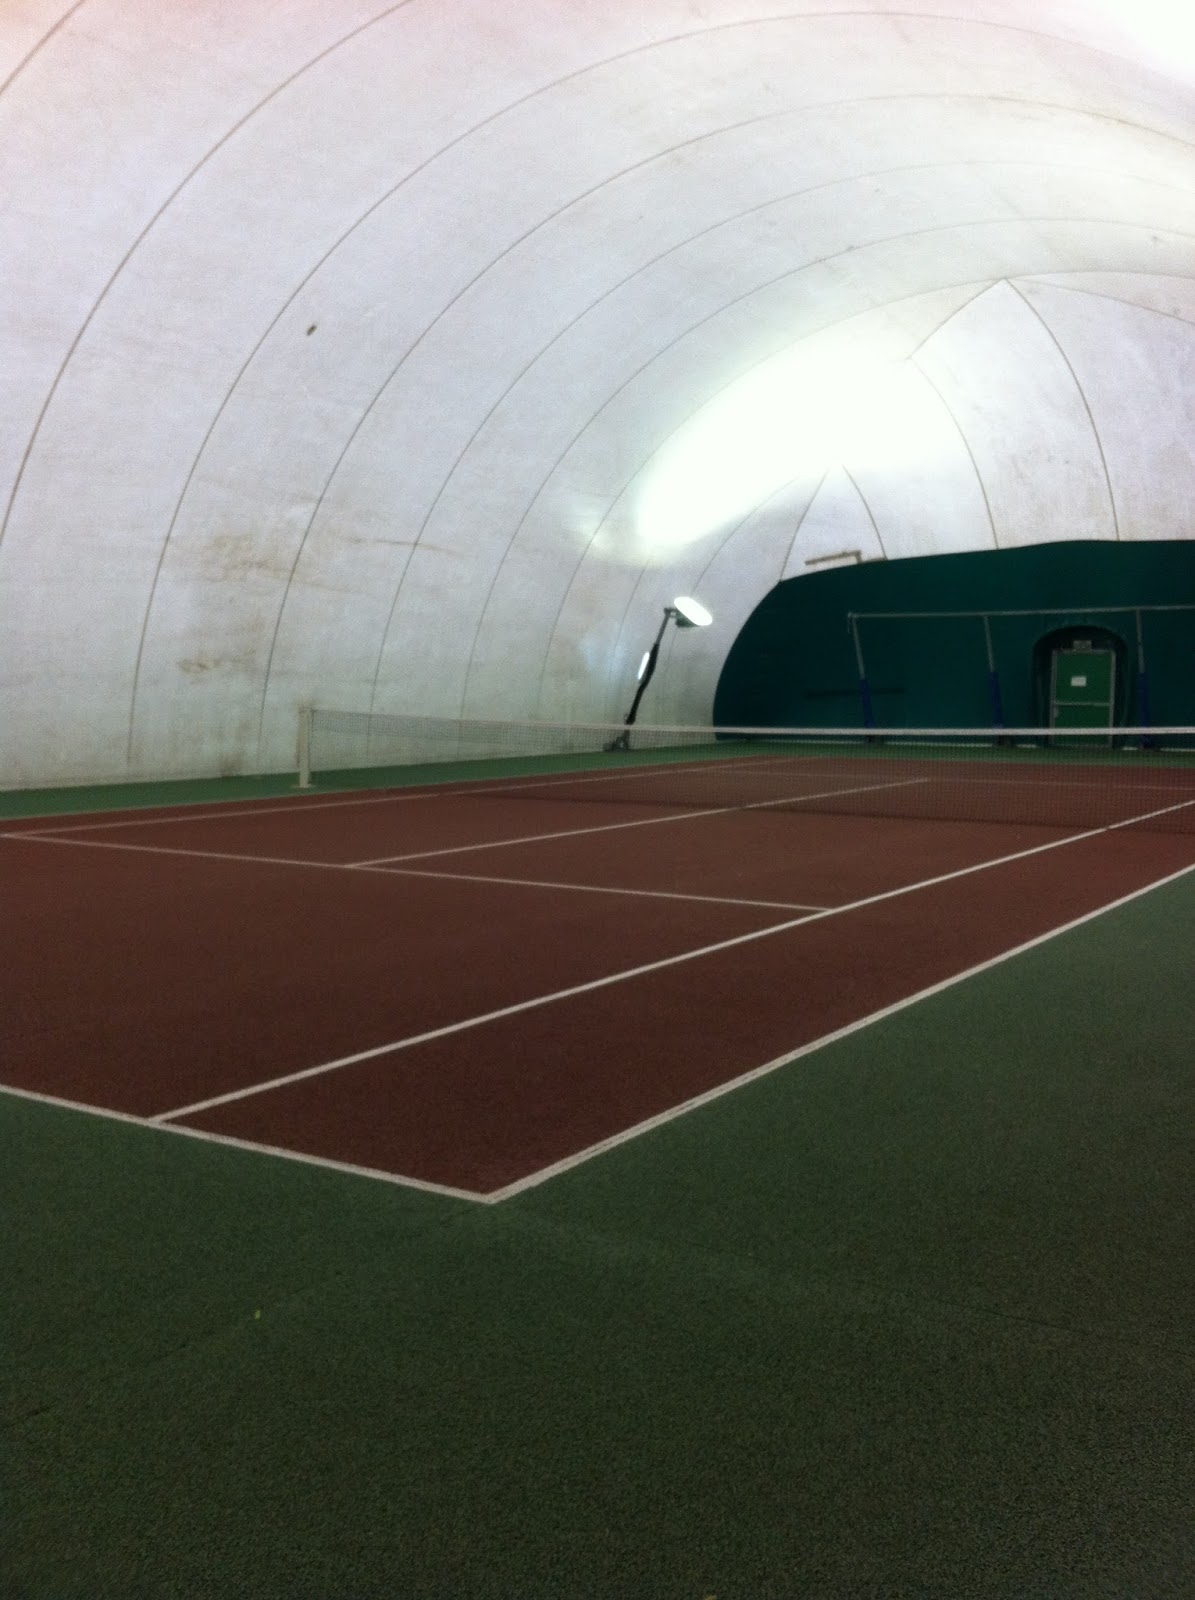 A new racket  for my partner    new balls and a perfect playing surface    what more could you ask for  We had a great game  The ceiling height here  is much. Encore On Court  a tennis tour of Paris  Tennis Poterne des